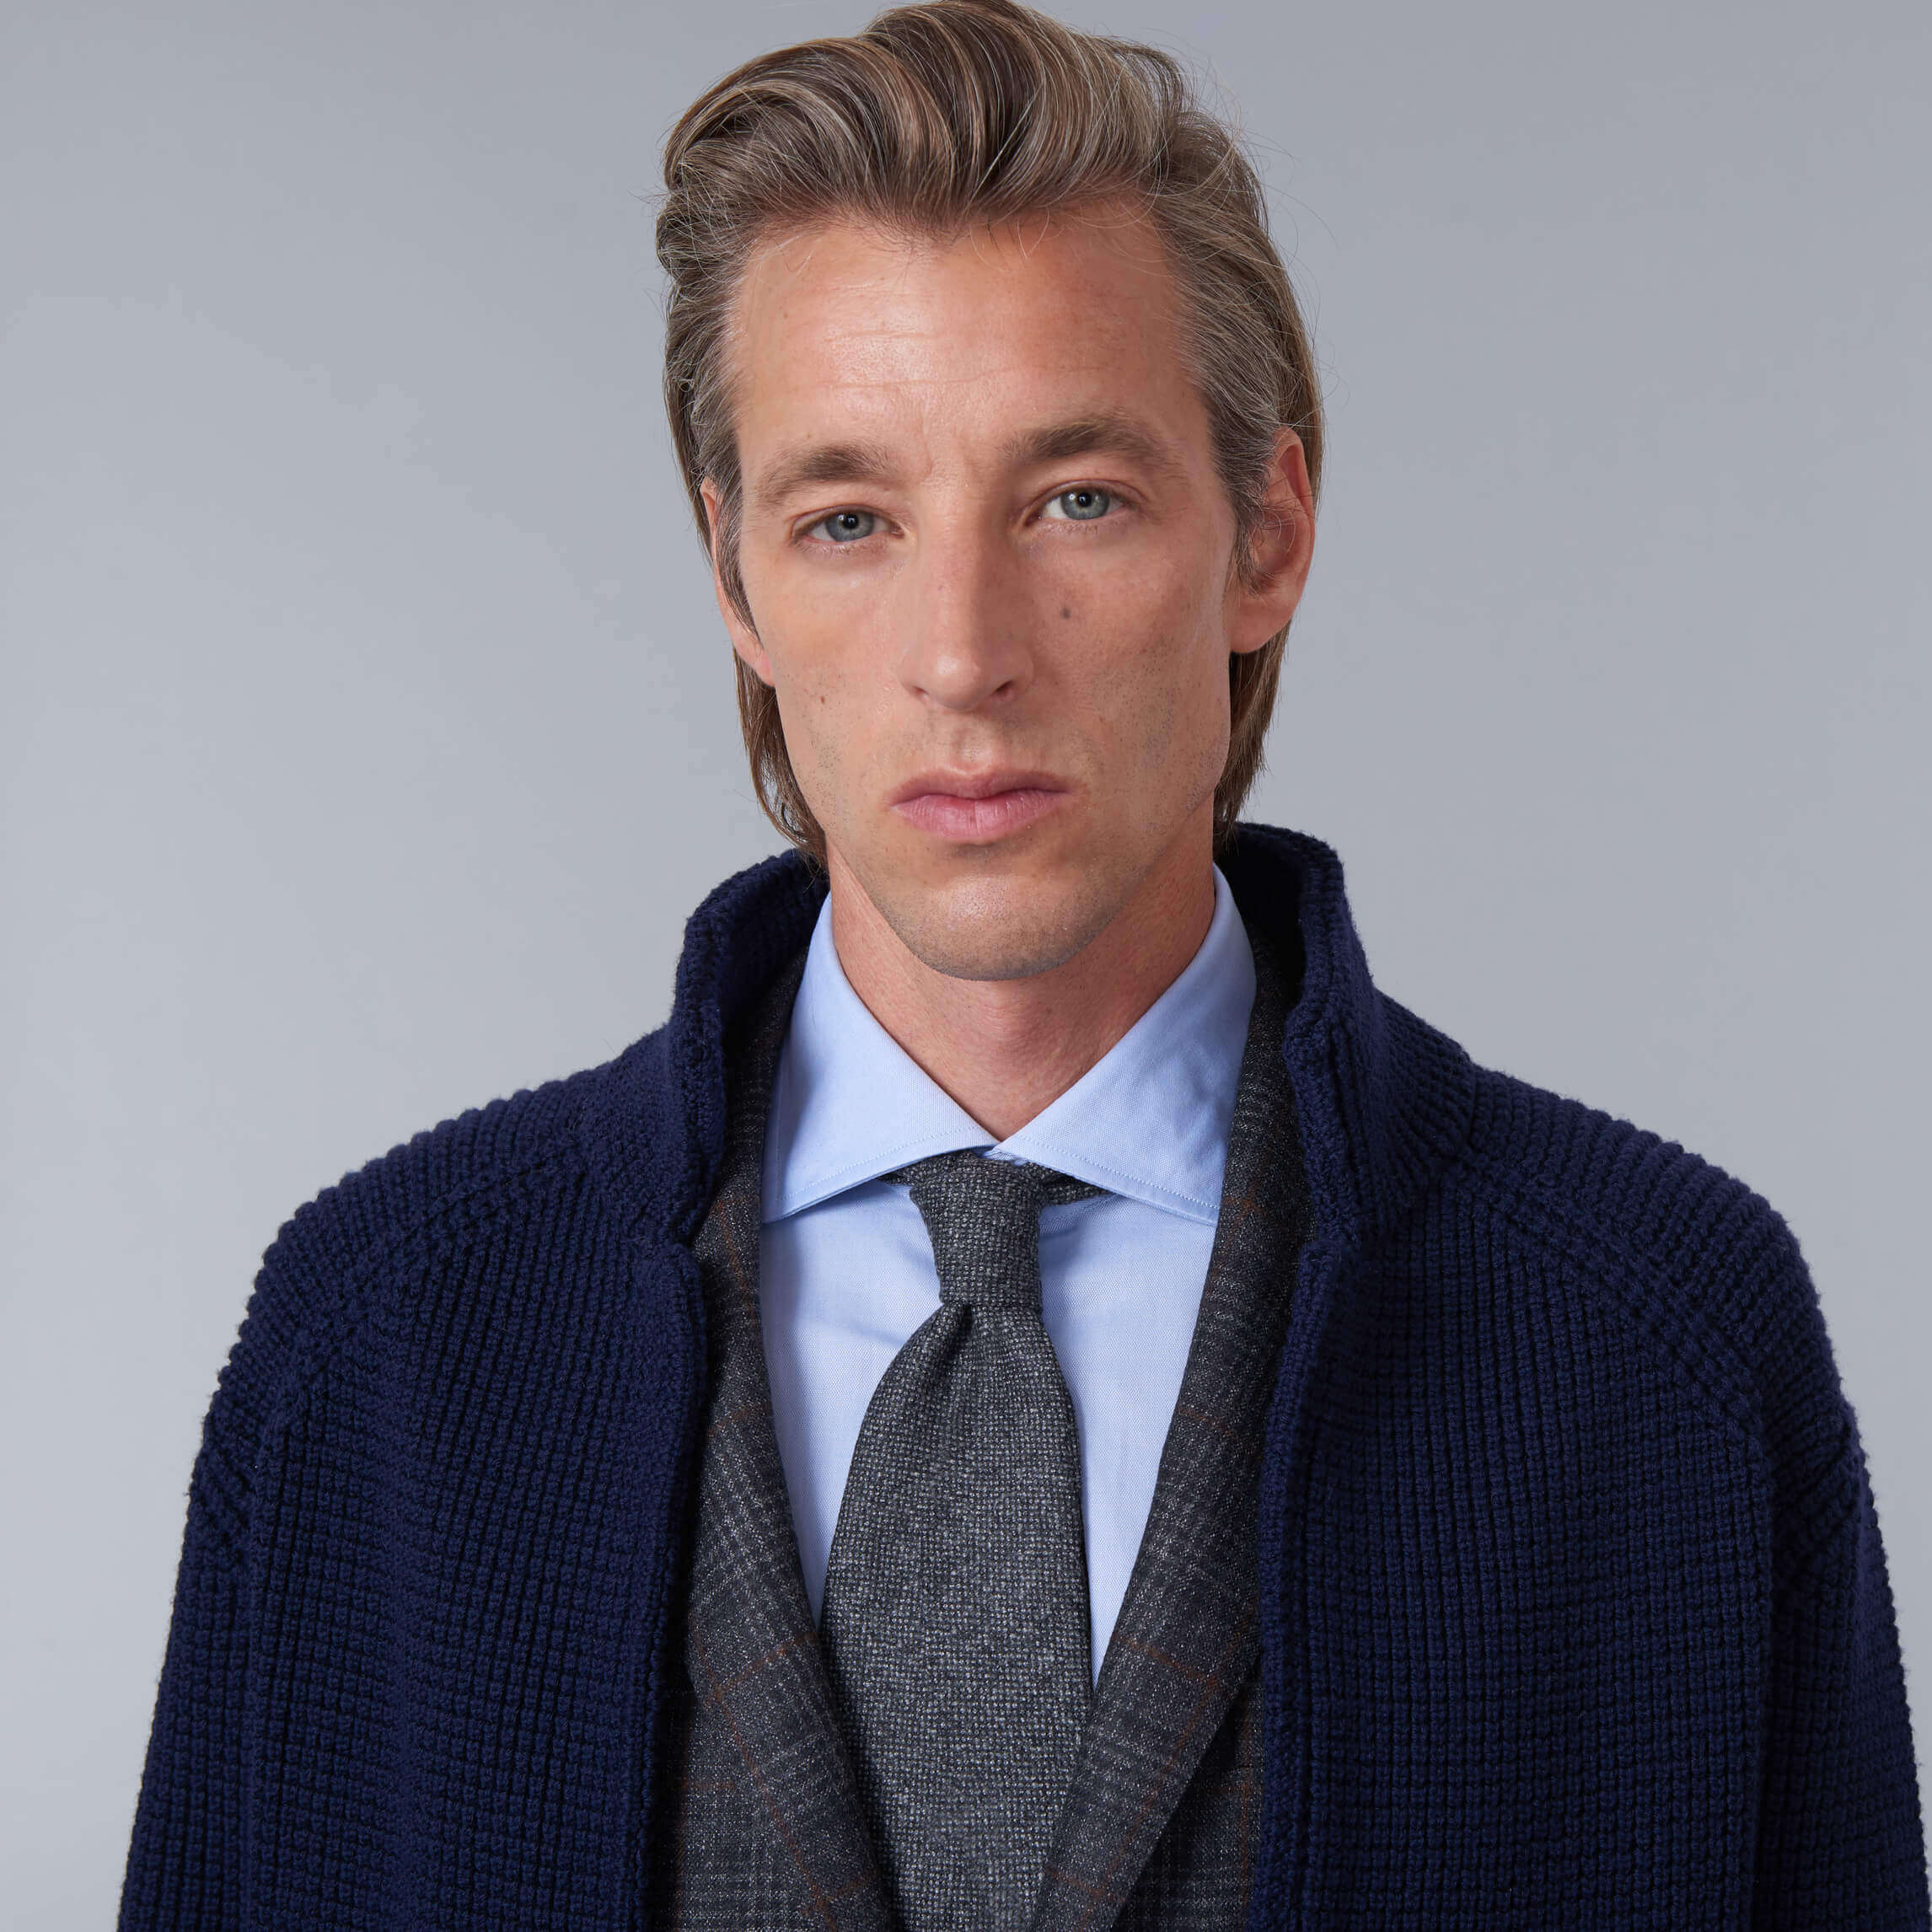 Male model wearing Baldassari knitte jacket in navy